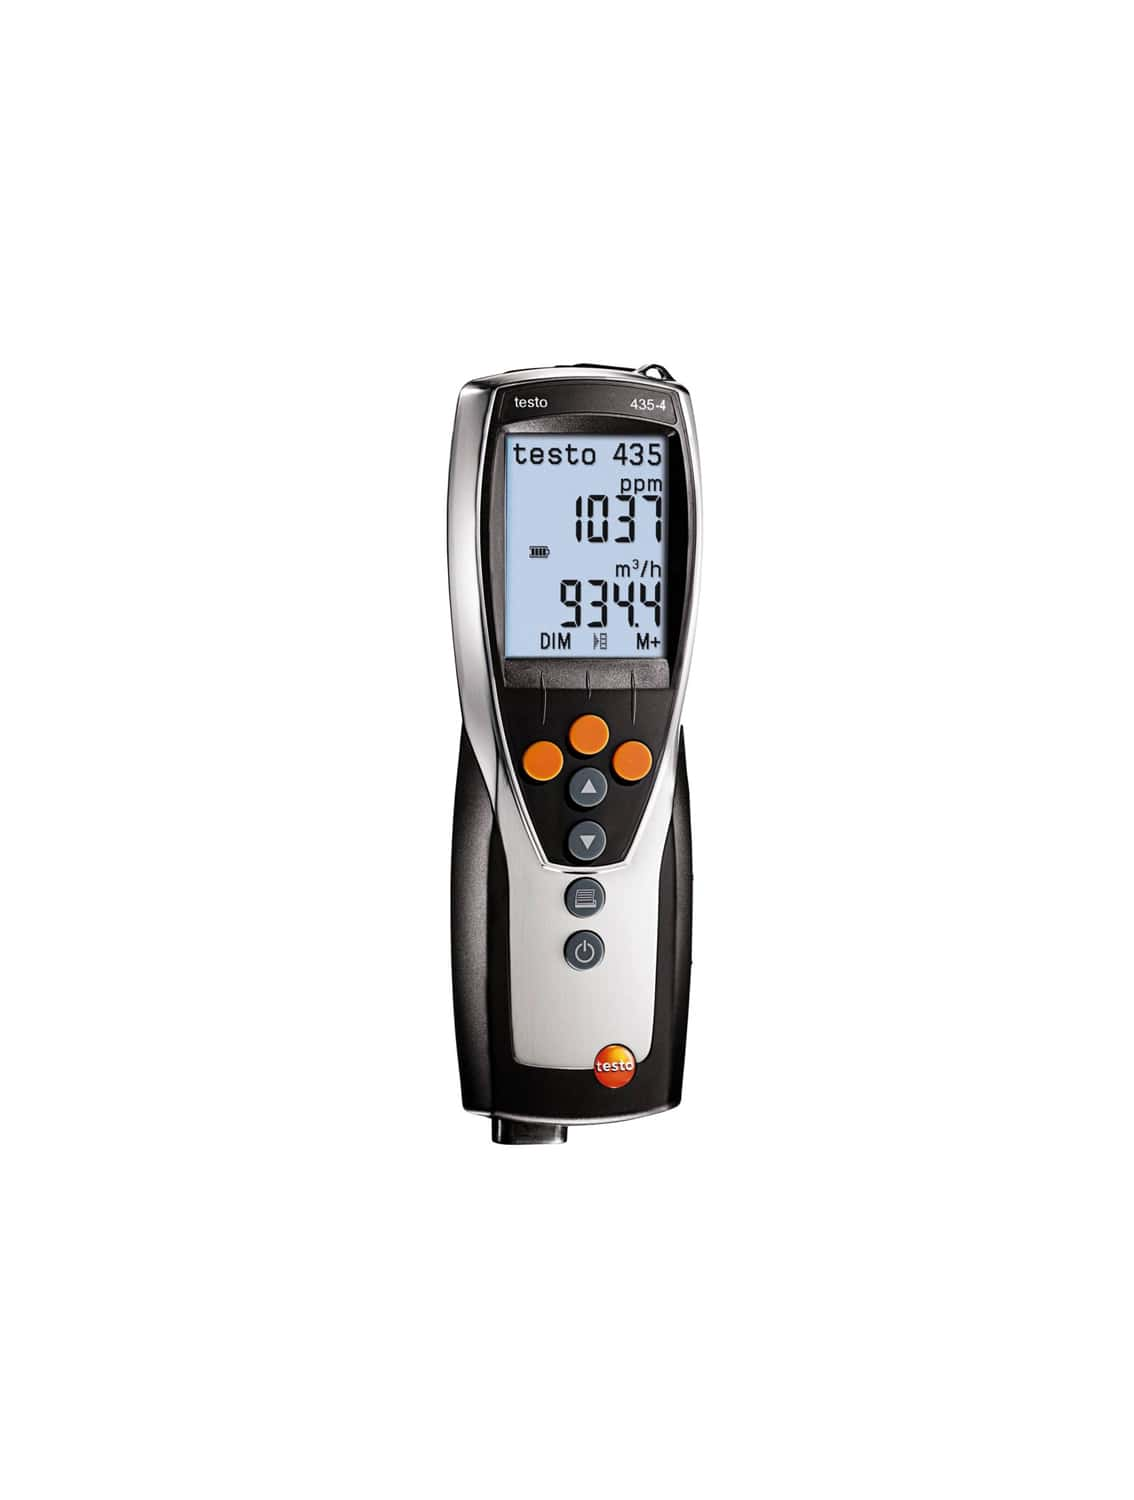 testo 435-4 - Multifunction indoor air quality meter